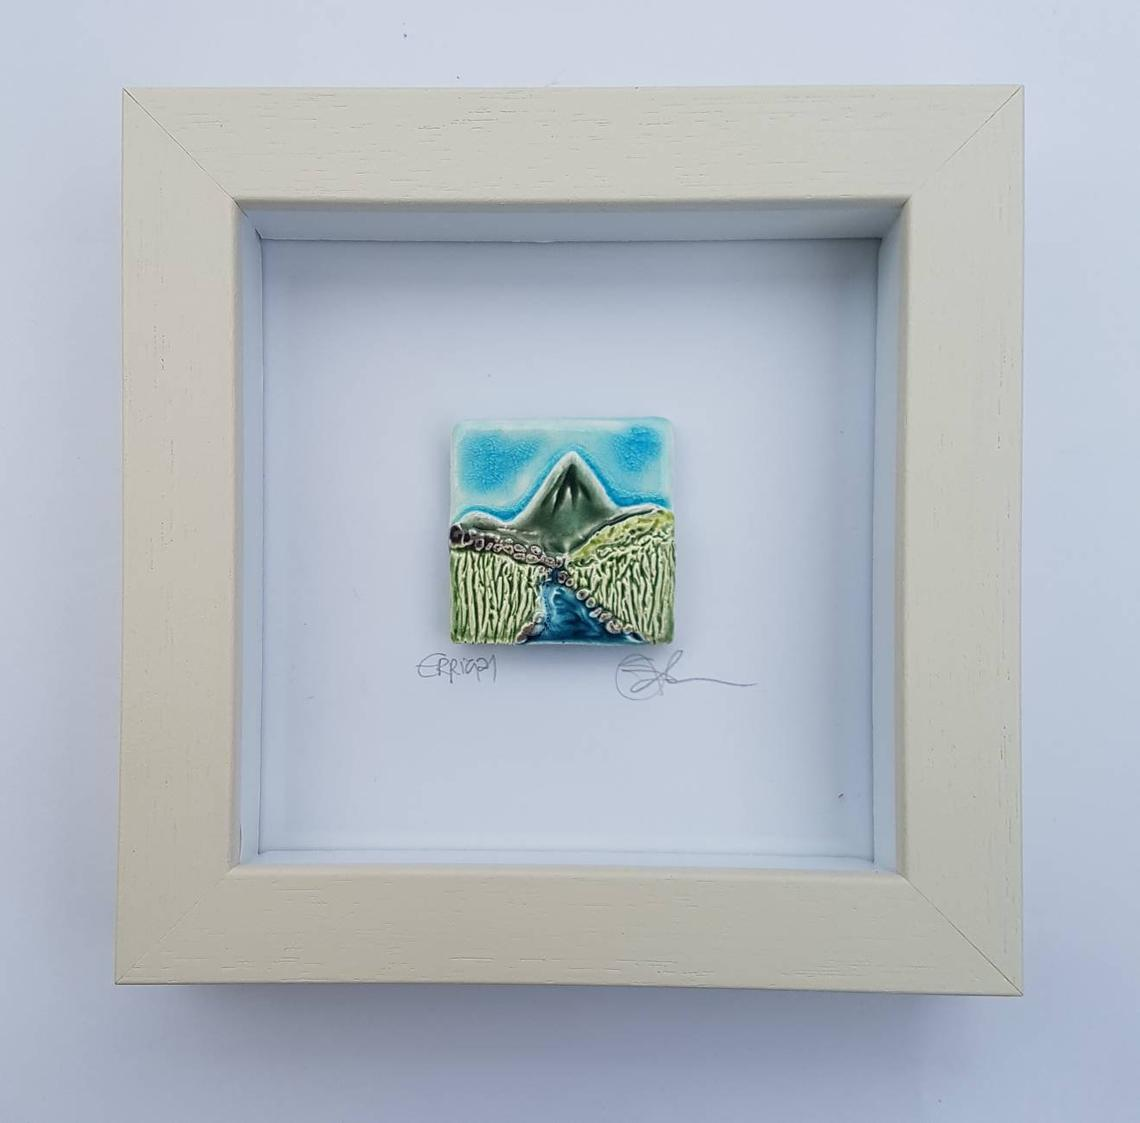 Sharlene Kemple - Ceramic Wall Art Irish Scenes